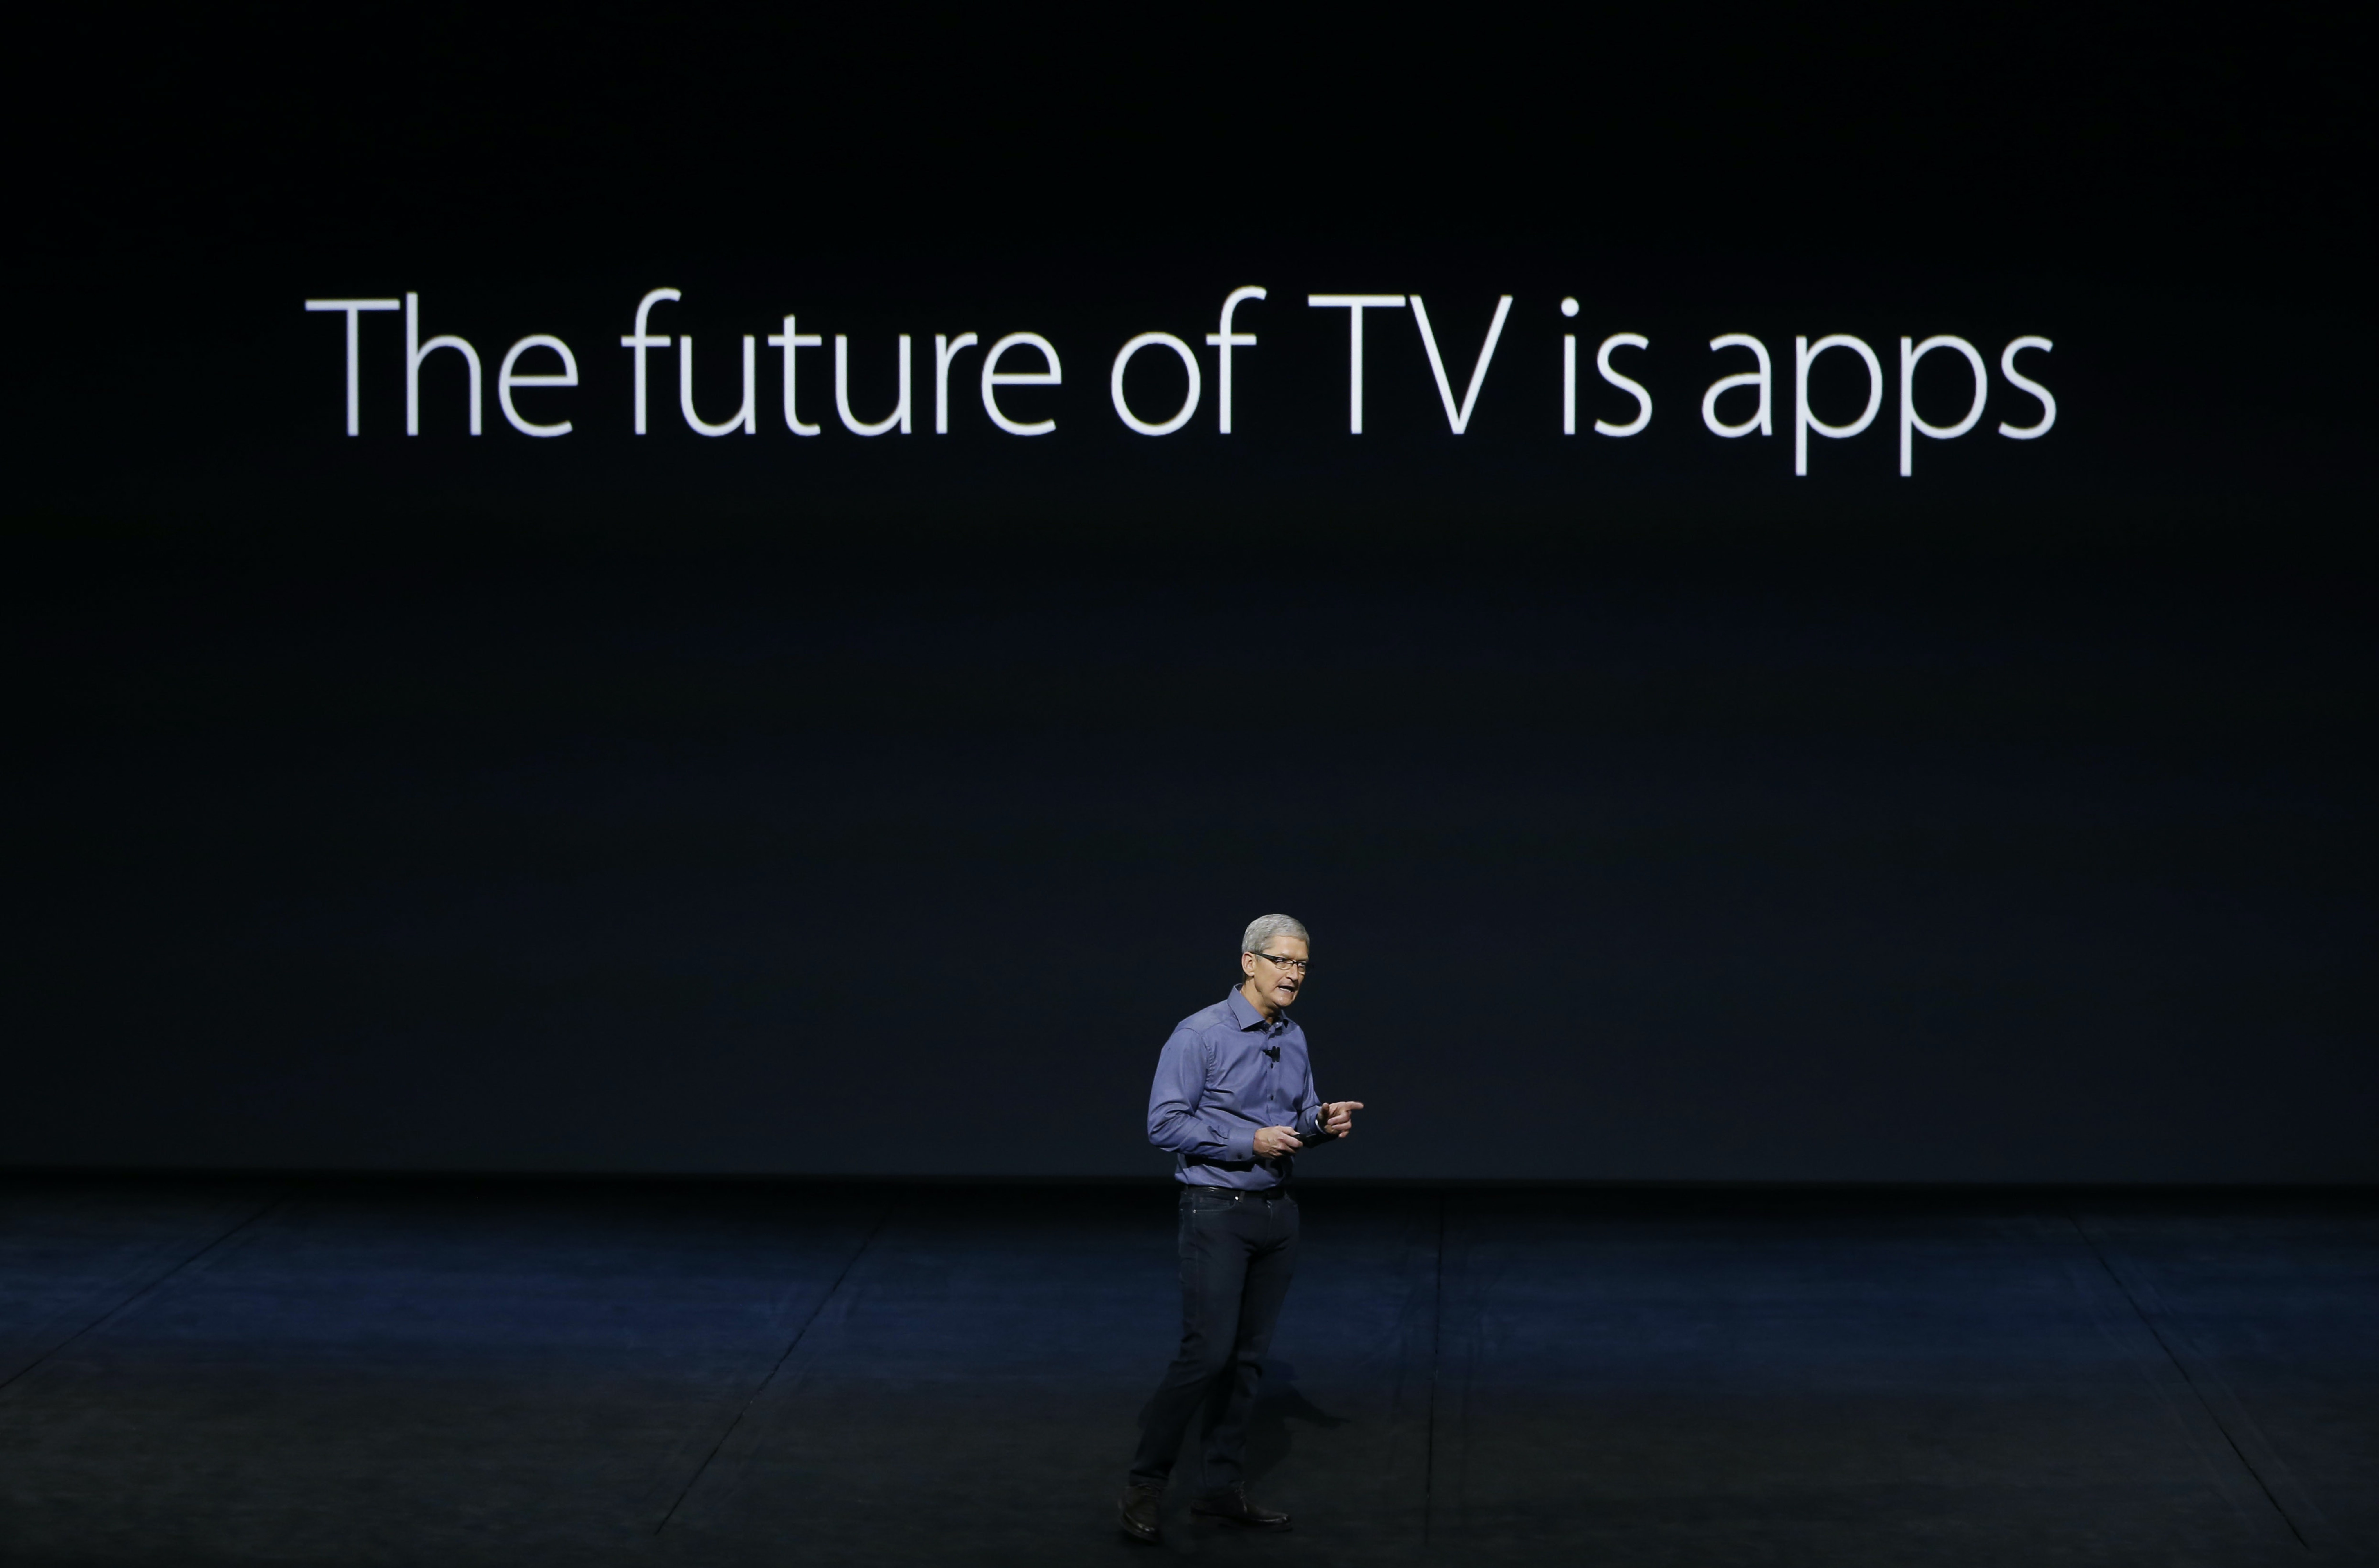 Apple's Tim Cook introduces the new Apple TV on September 9, 2015 in San Francisco.